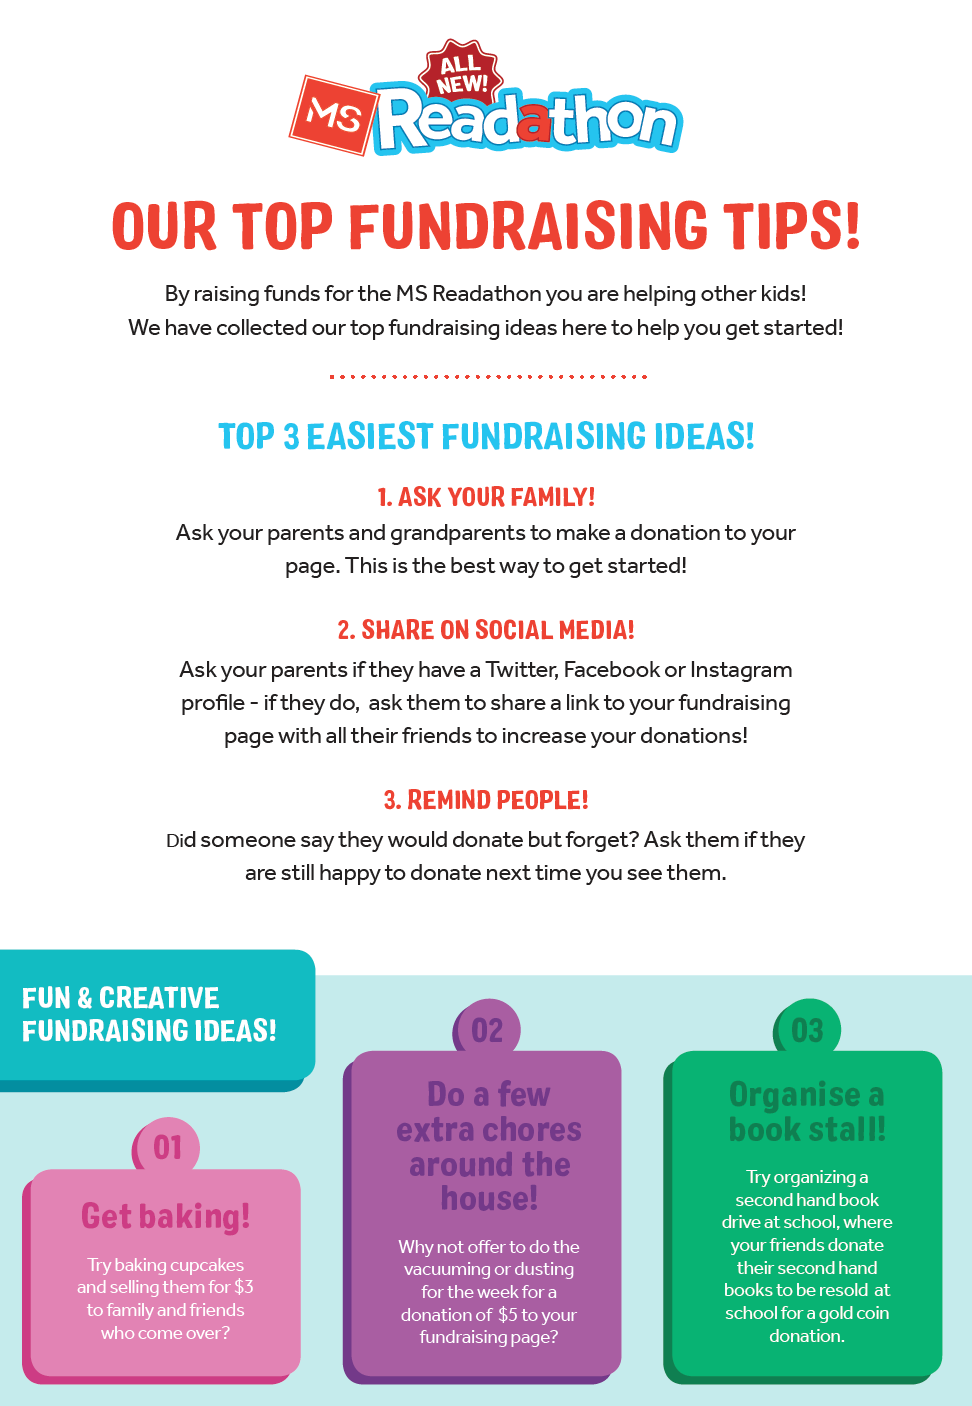 Our Top Fundraising Tips!